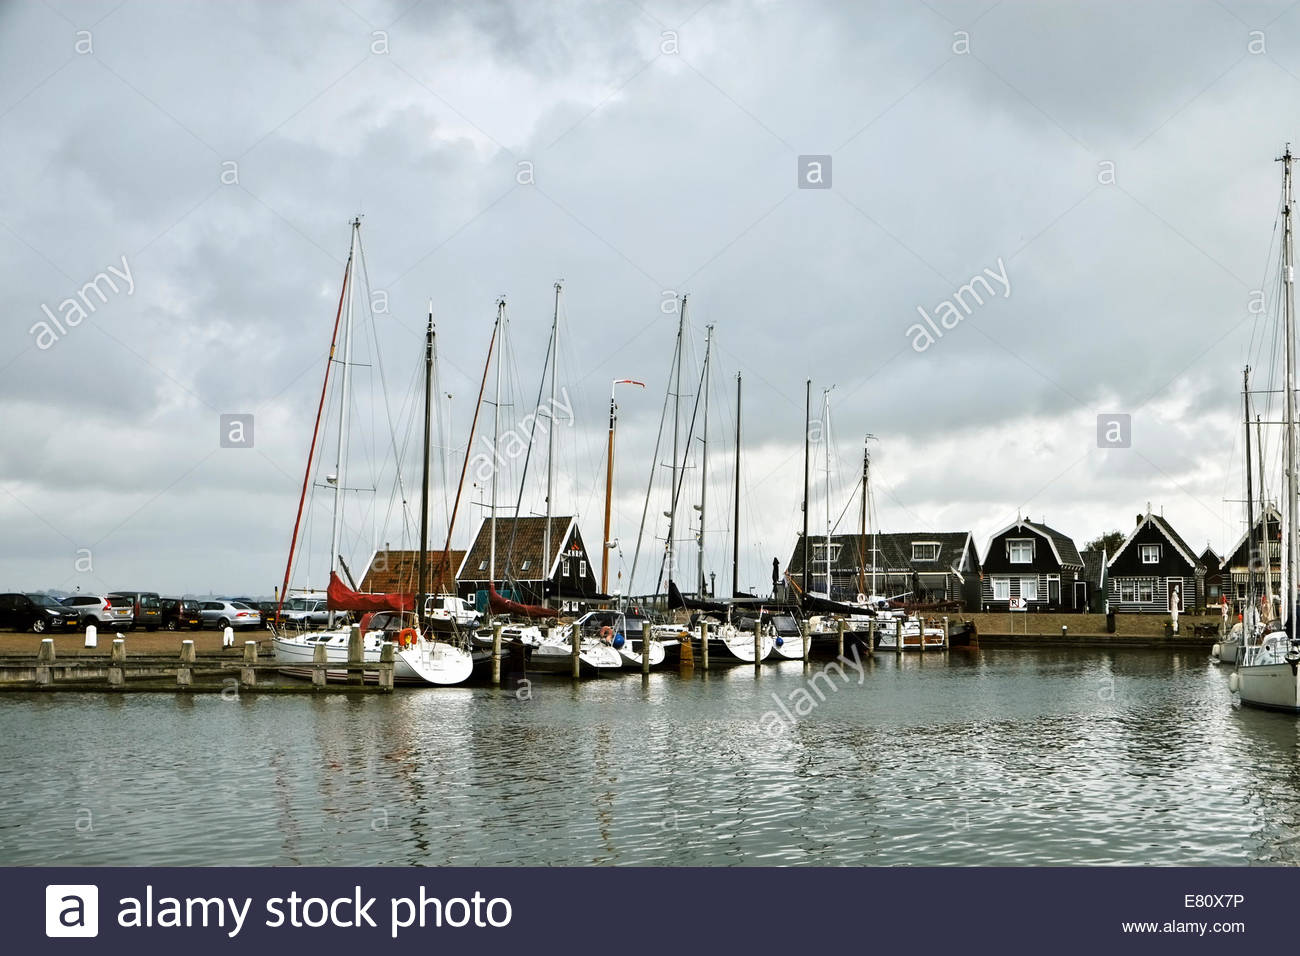 Sailboats and other watercraft in the harbor of Marken, shops and restaurants along Havenbuurt in background. - Stock Image